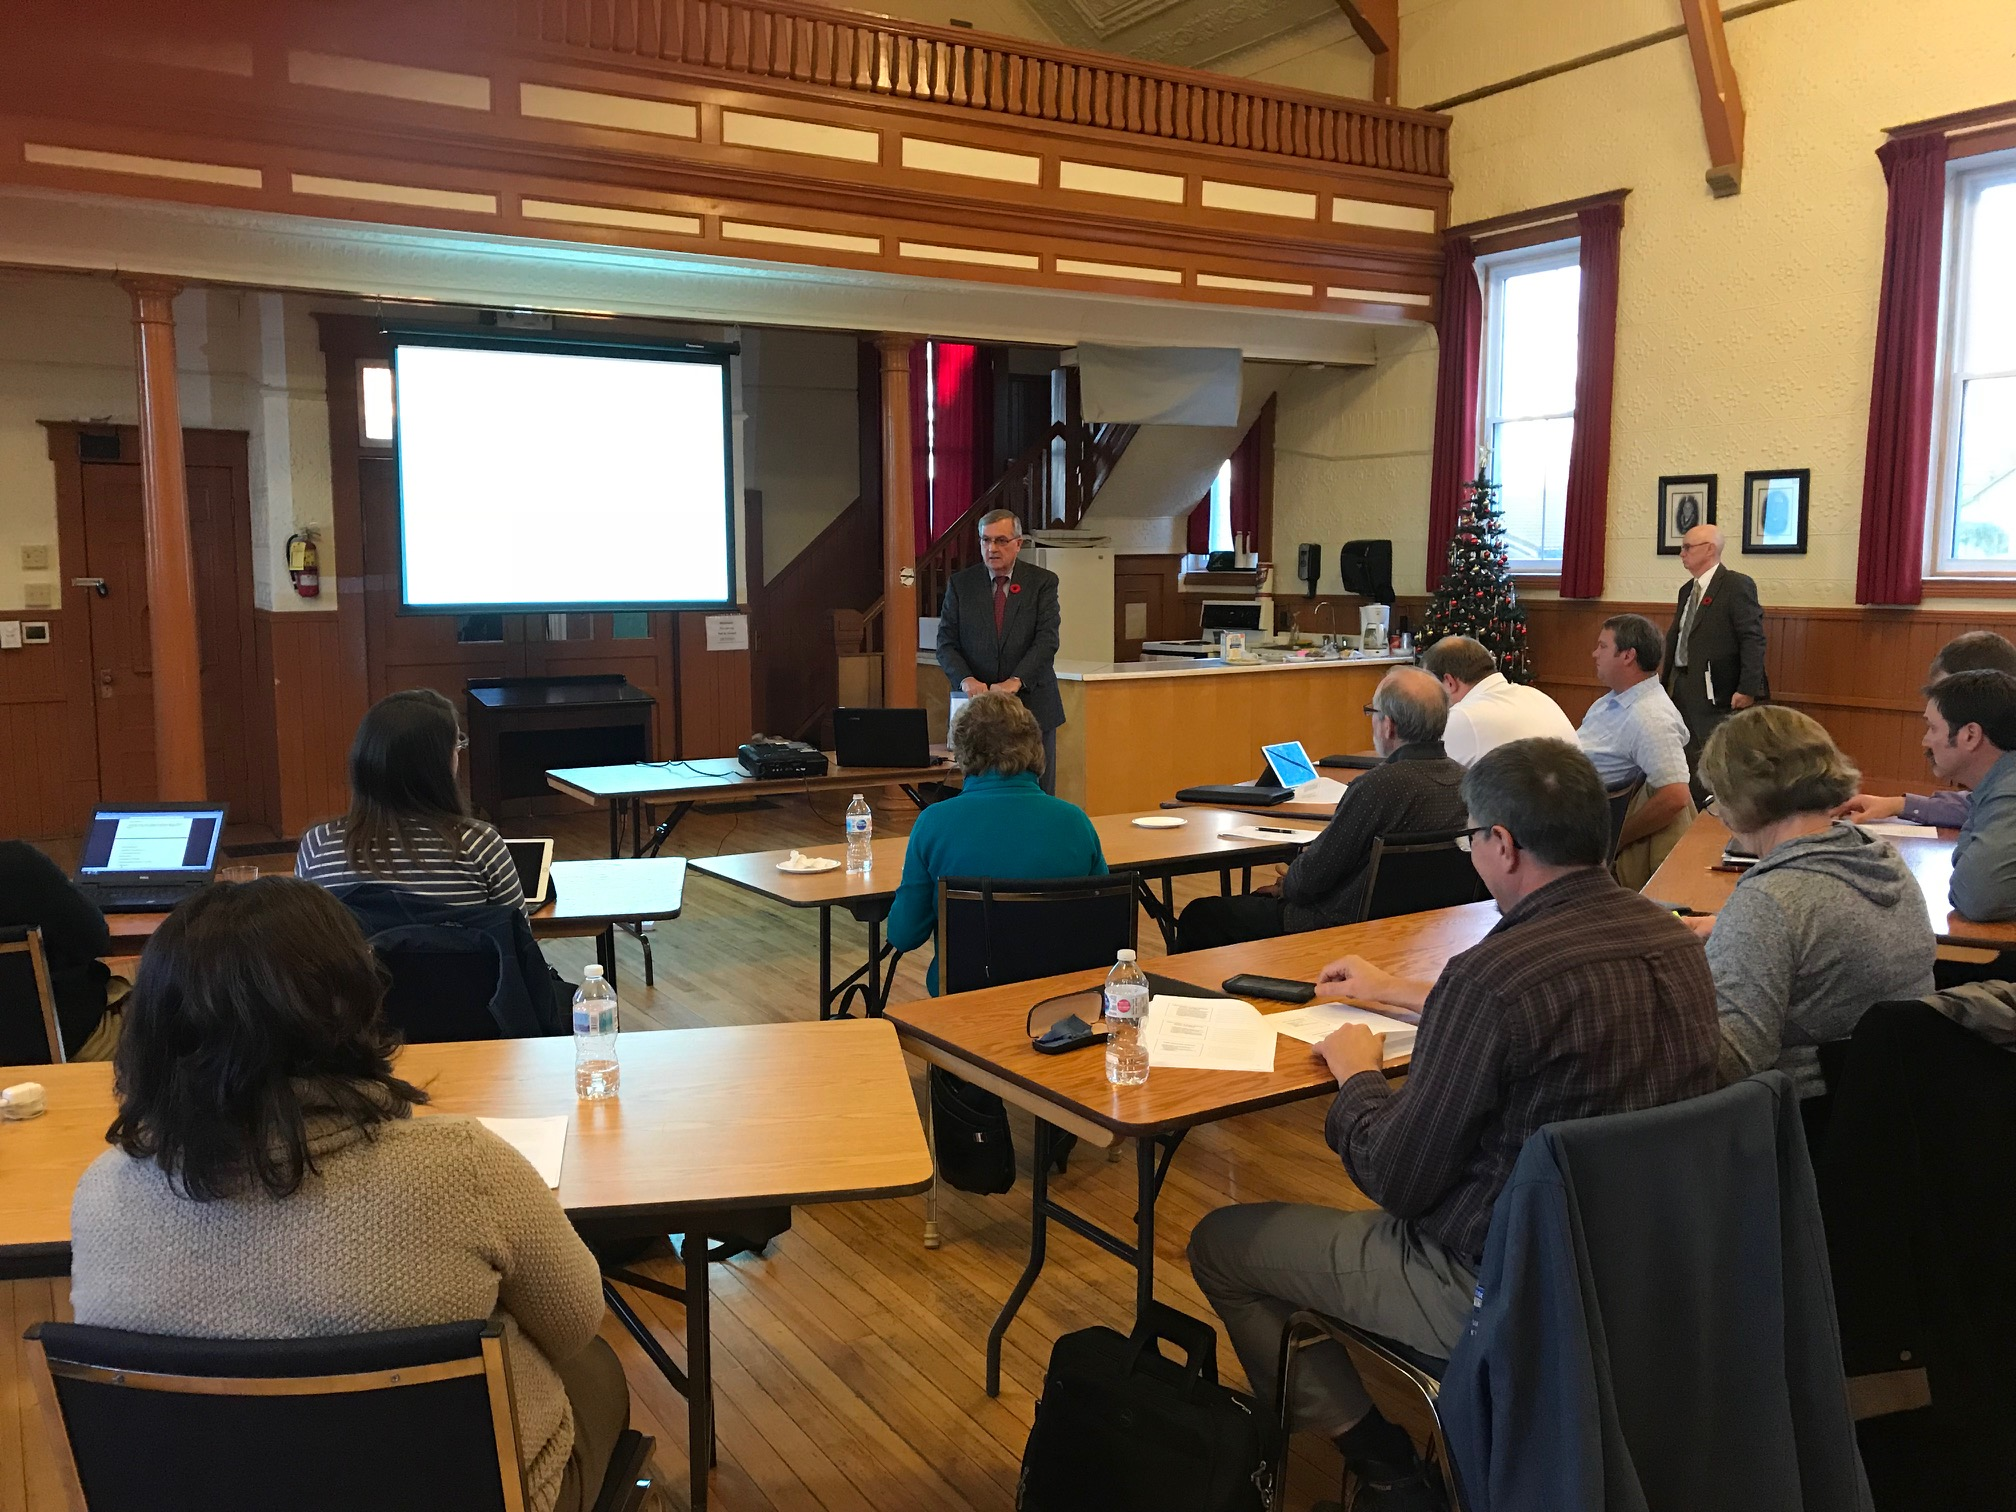 Nigel Bellchamber of Amberly Gavel Ltd. presents to staff and incoming council on the important role council plays in municipal government.